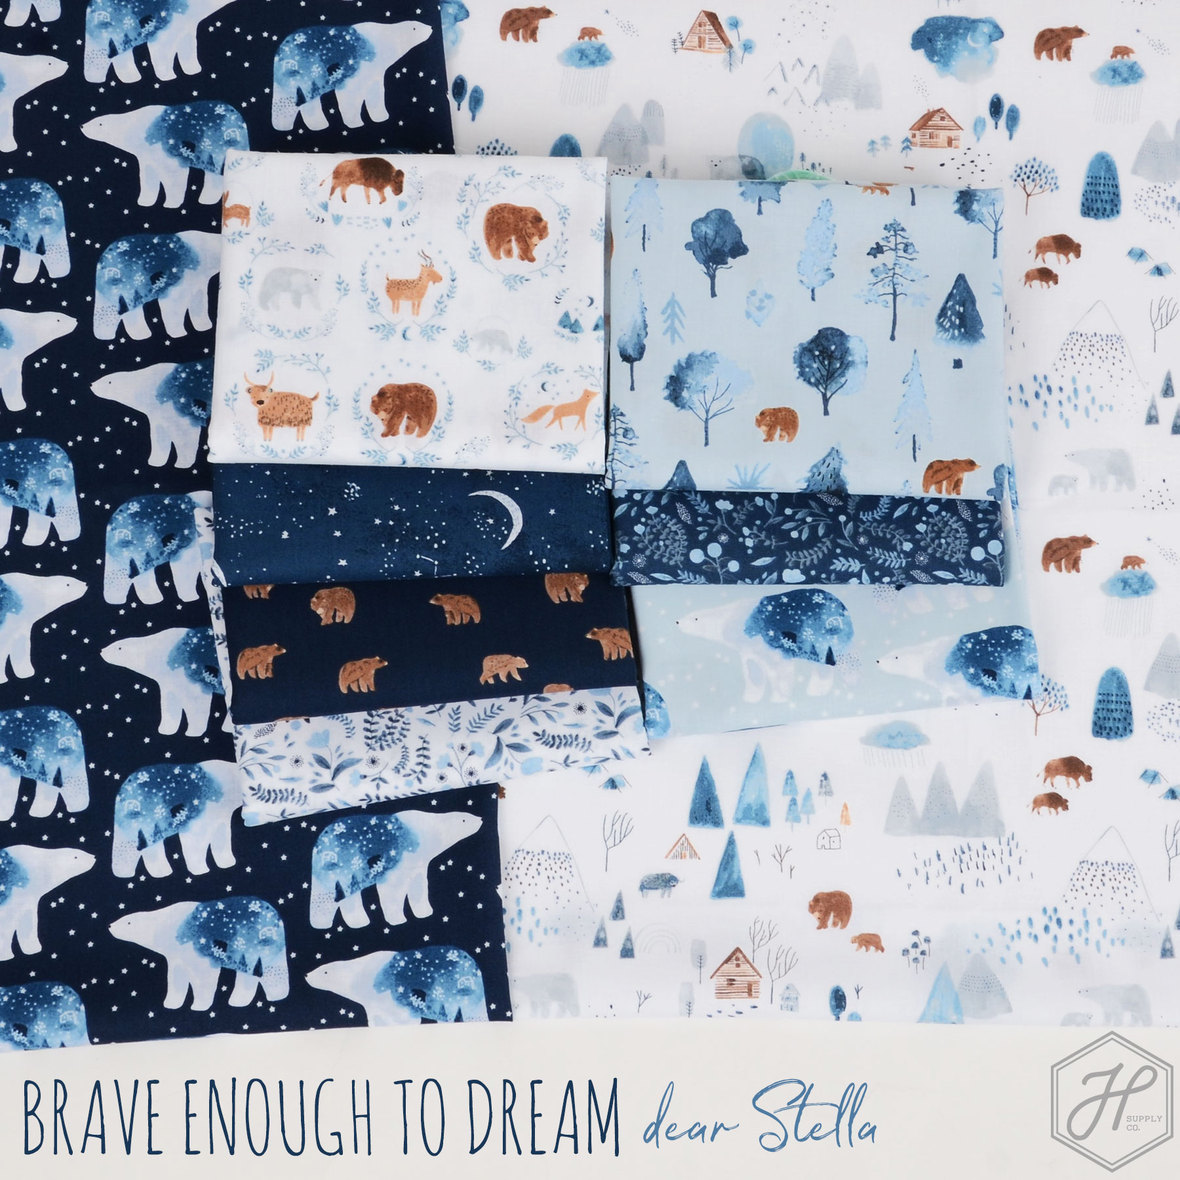 Brave-Enough-to-Dream-fabric-poster-Dear-Stella-at-Hawthorne-Supply-Co